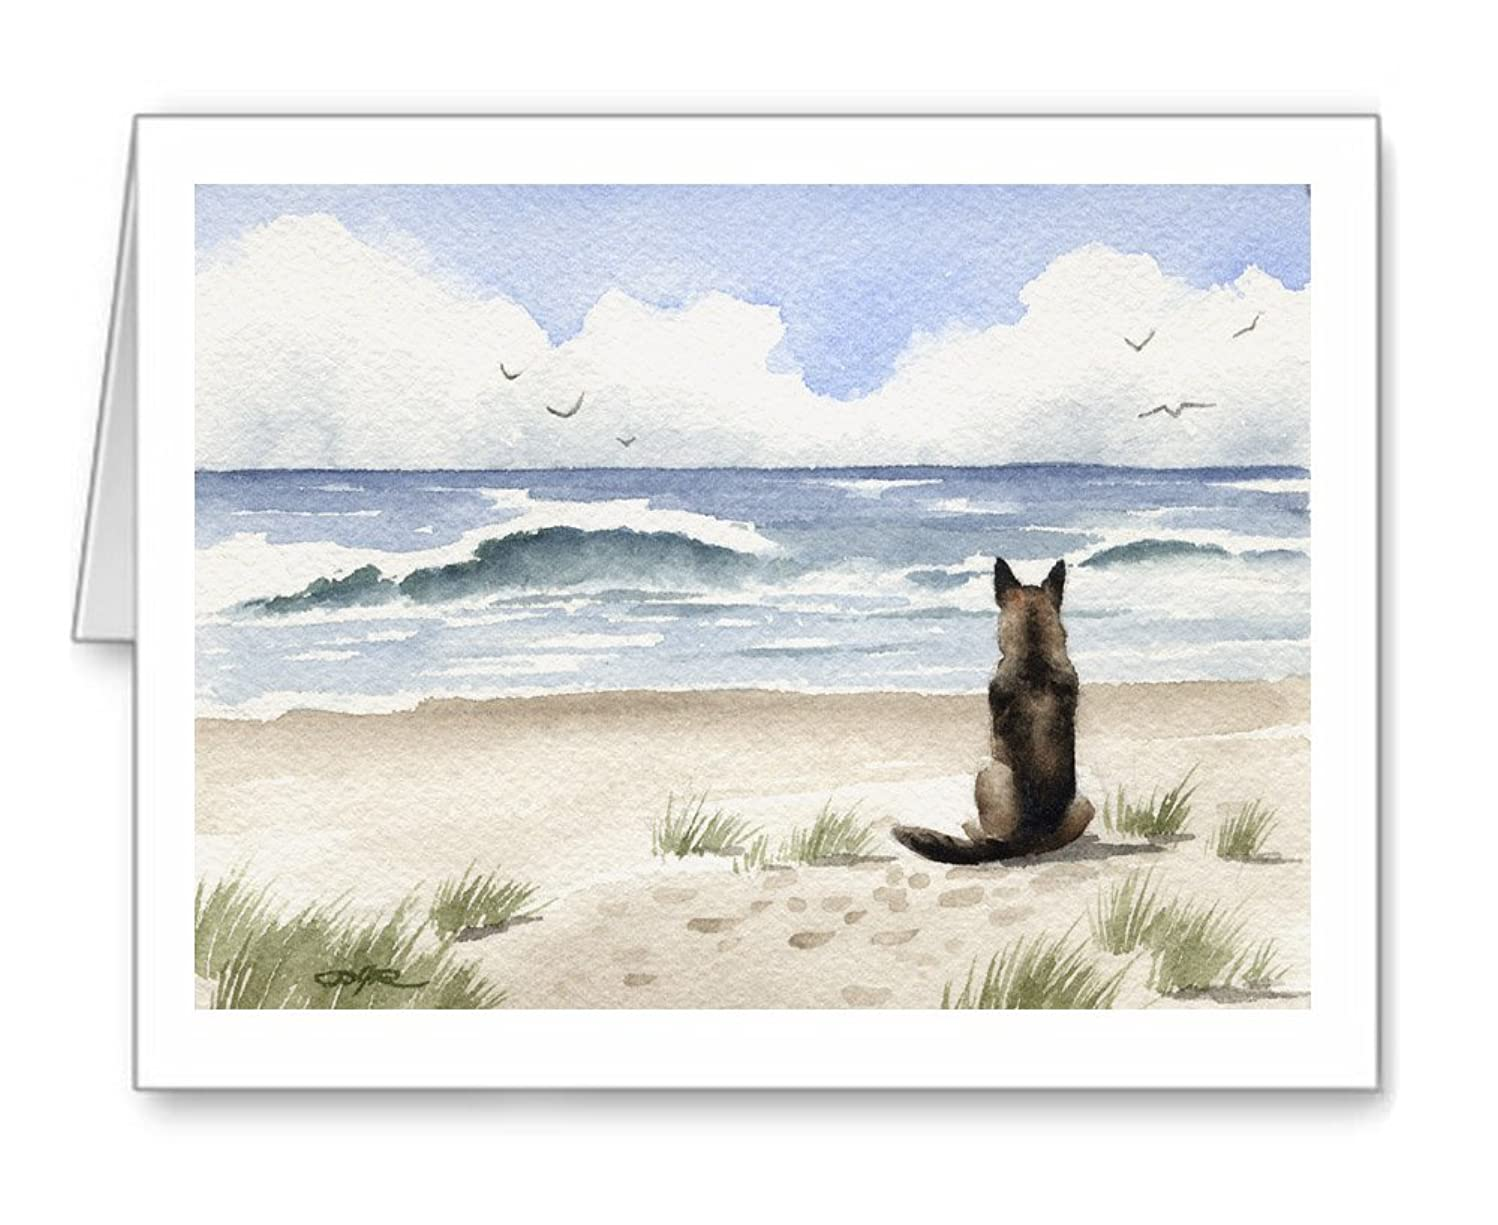 German Shepherd At The Beach - Set of 10 Note Cards With Envelopes